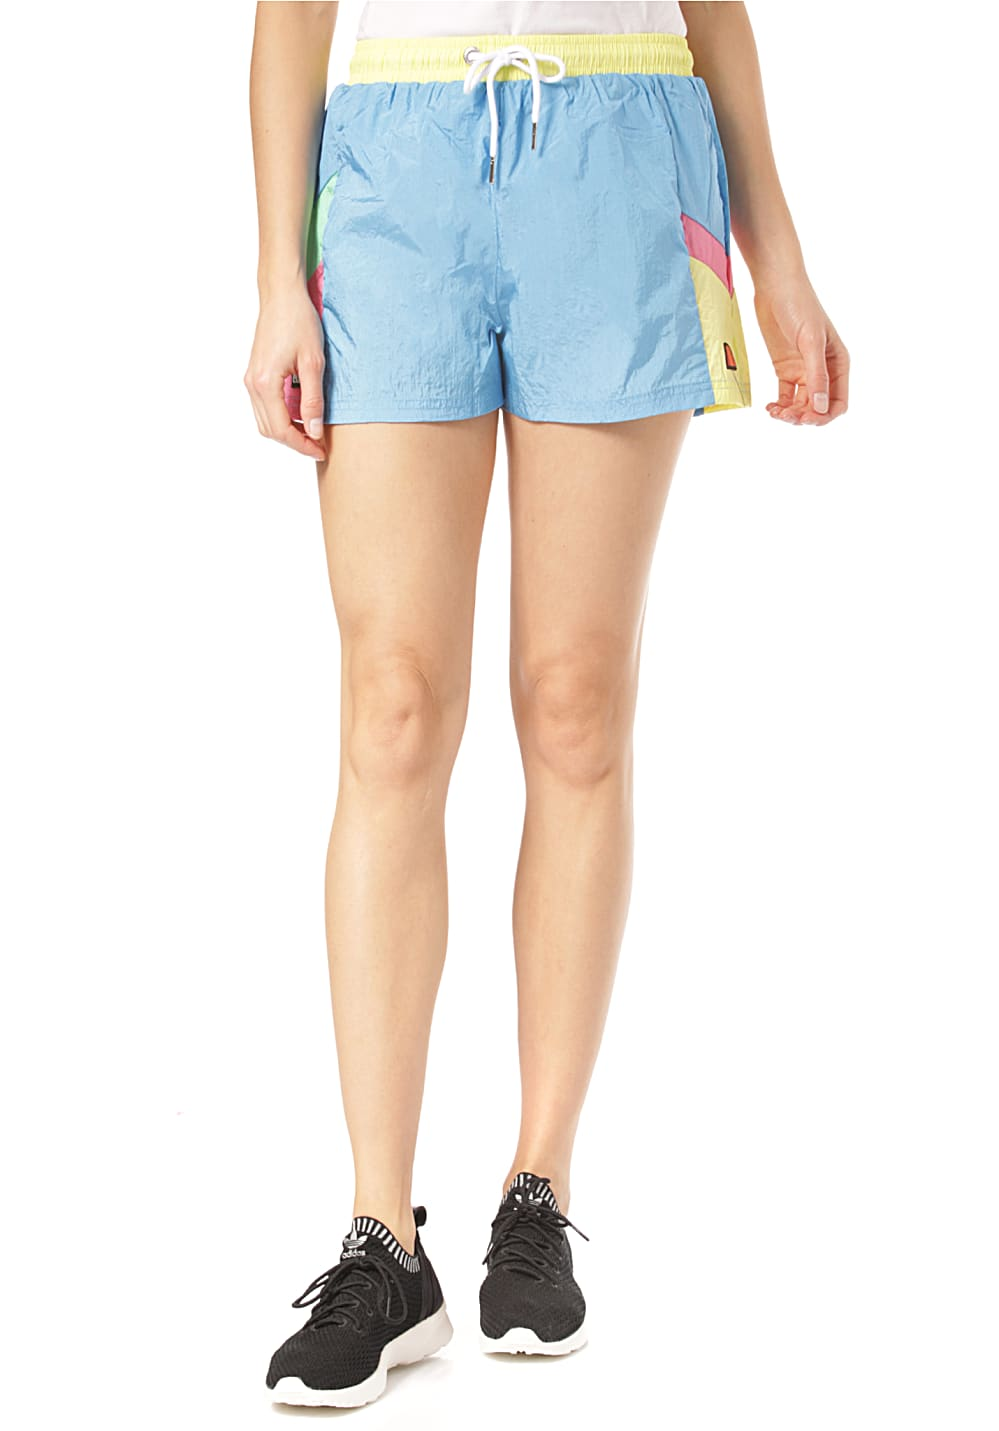 9ffe3a64265 ELLESSE Kasibu - Shorts für Damen - Blau - Planet Sports